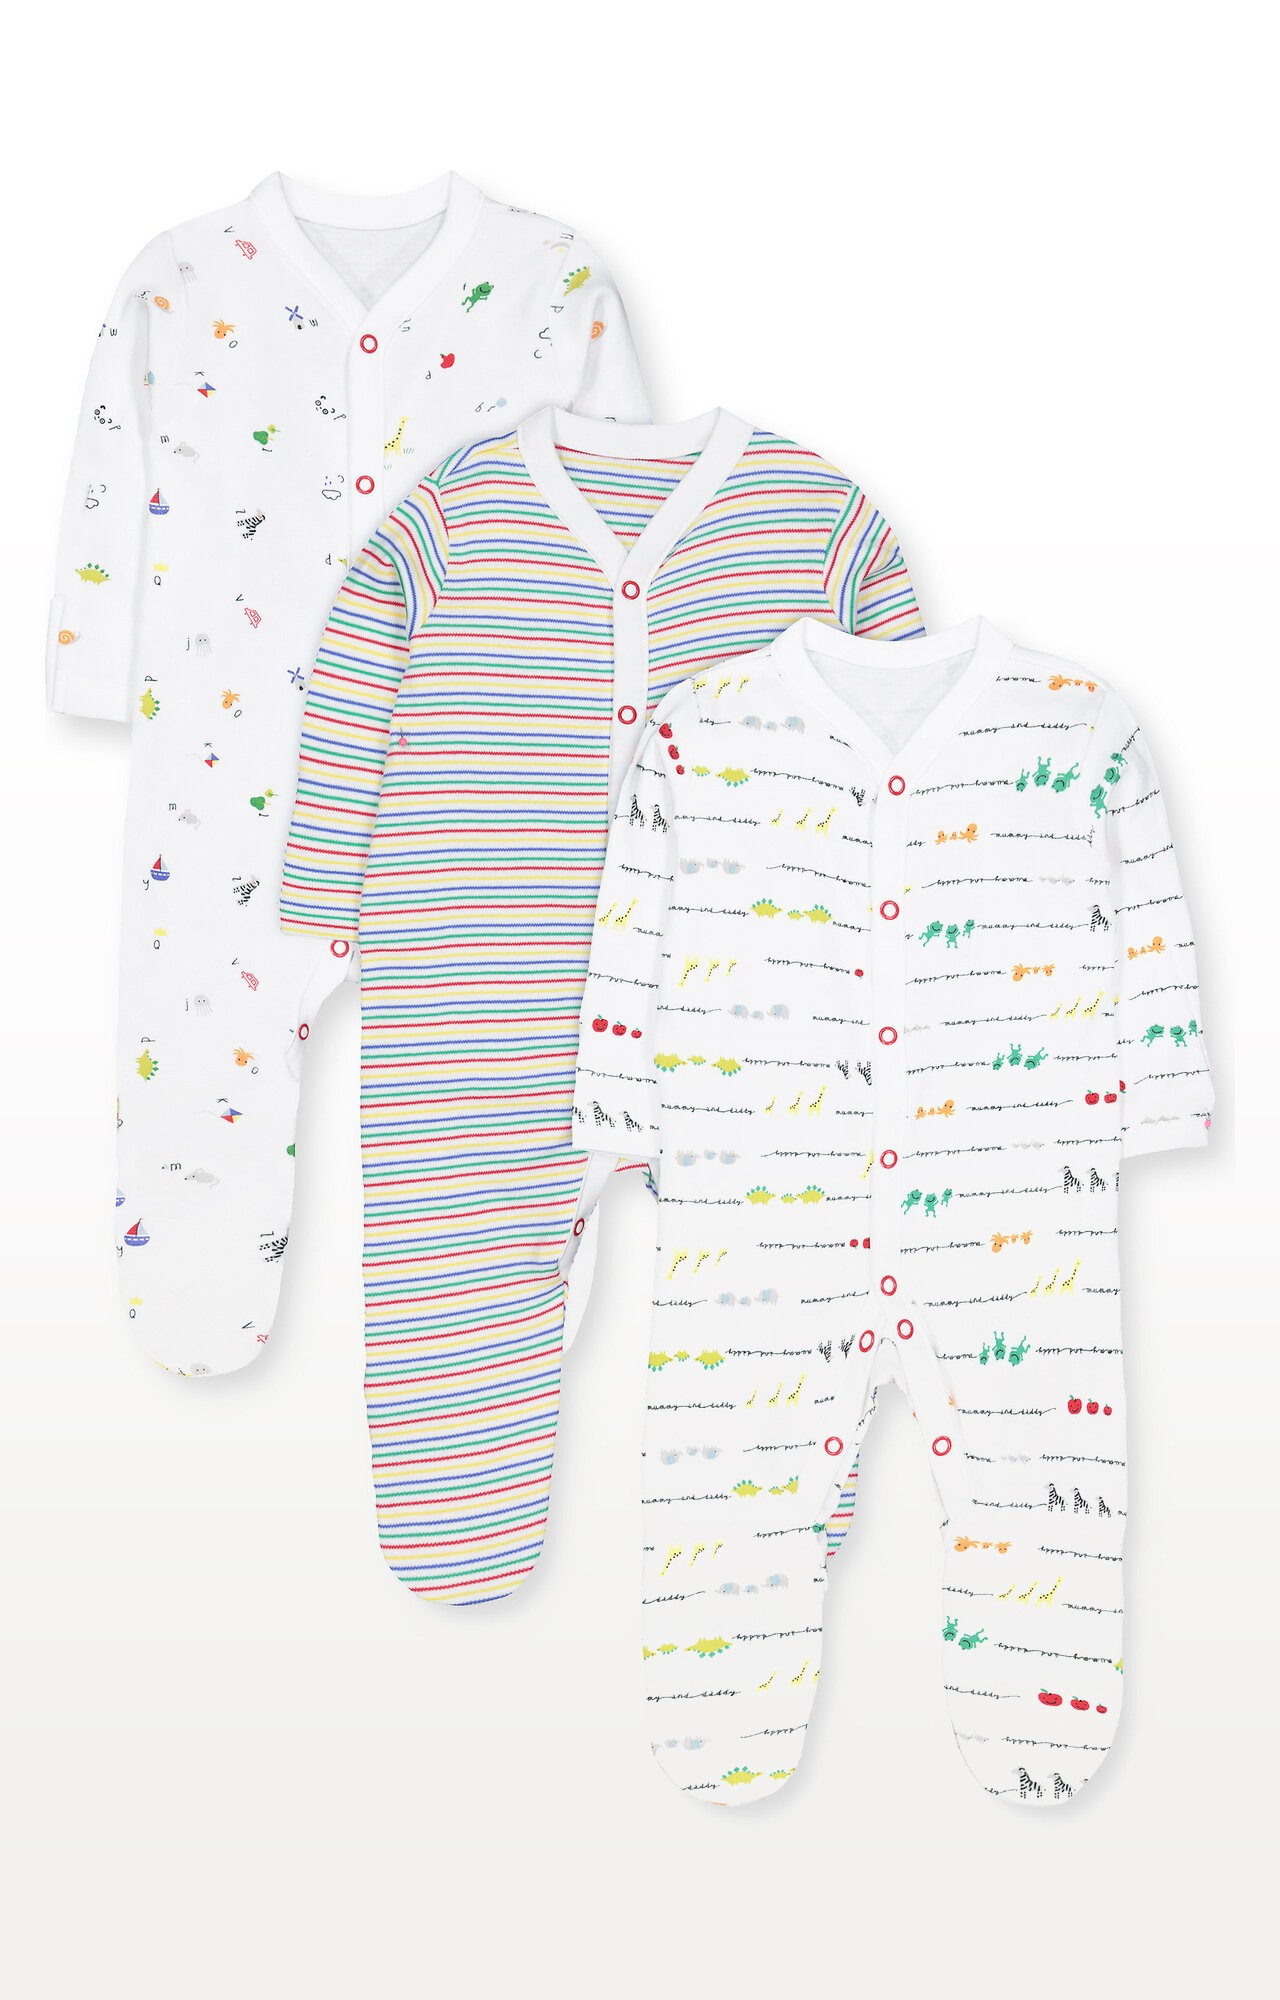 Mothercare | Alphabet, Animal and Stripe Sleepsuits - Pack of 3